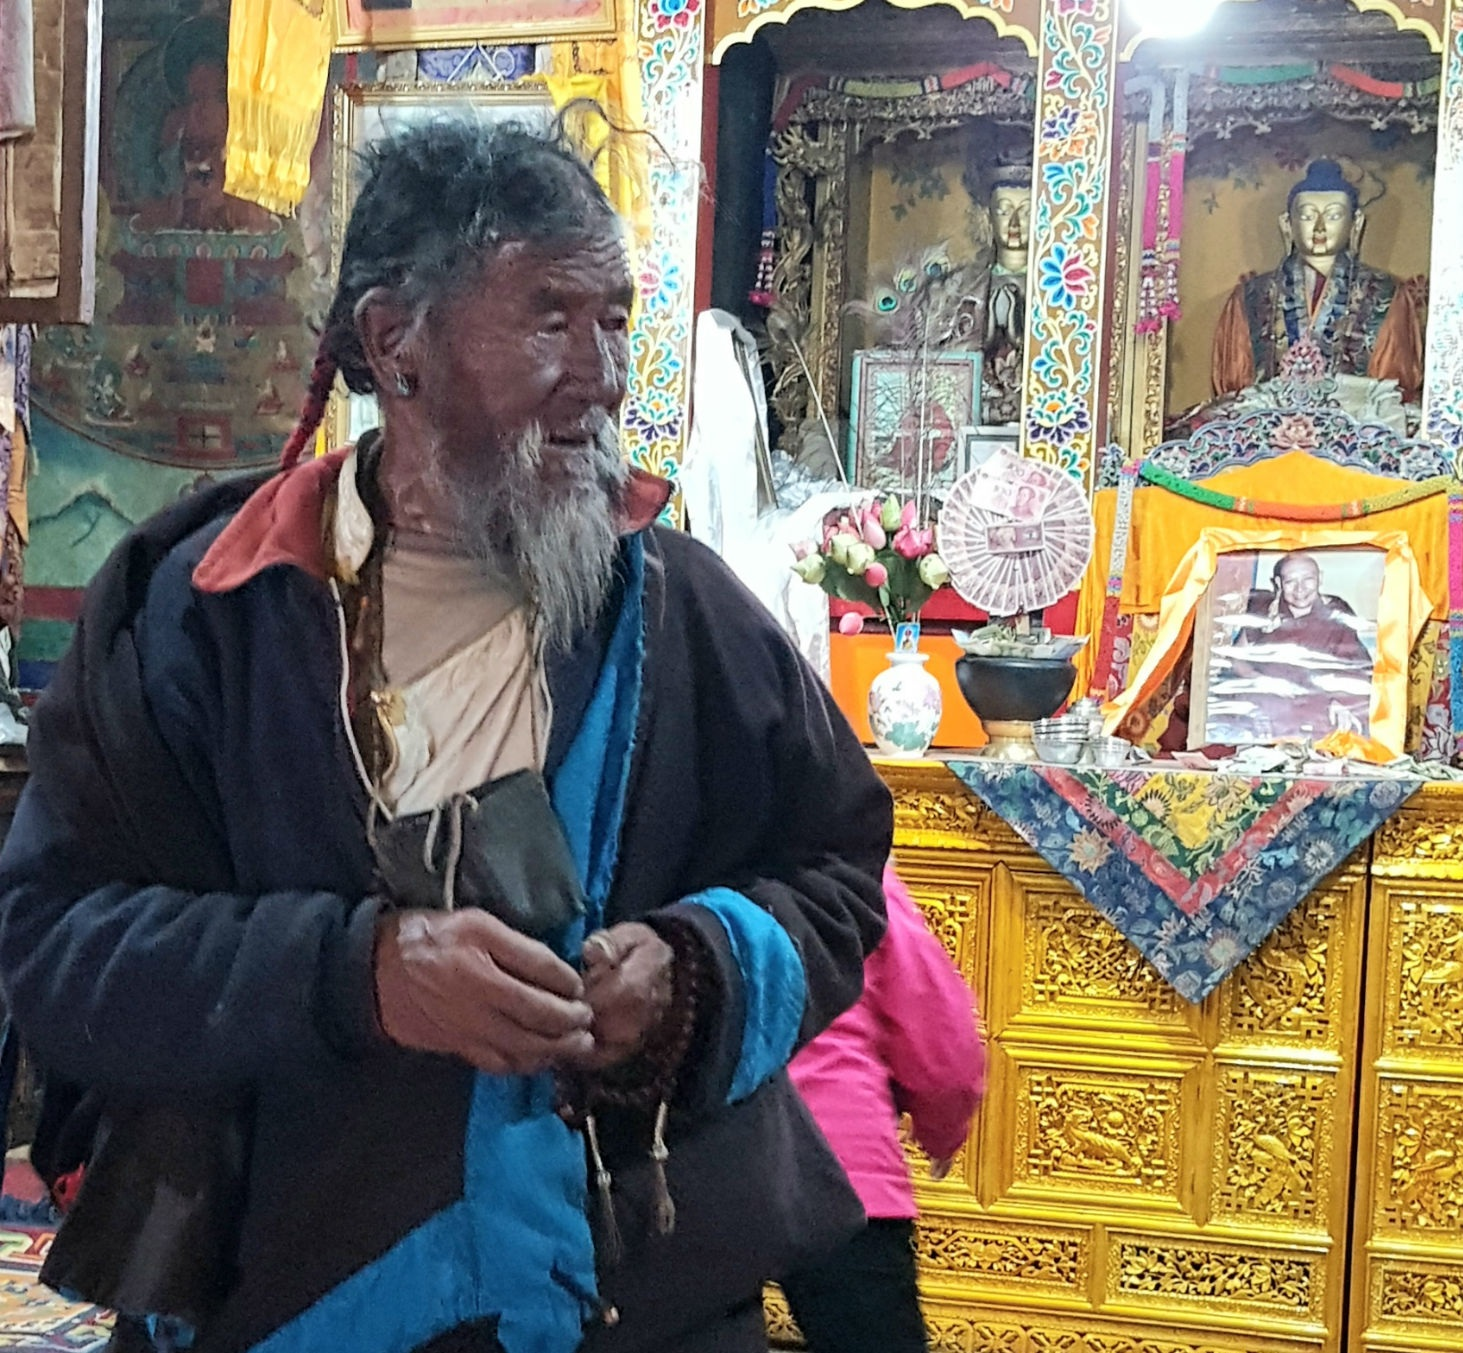 Pilgrim praying in Rongbuk Monastery